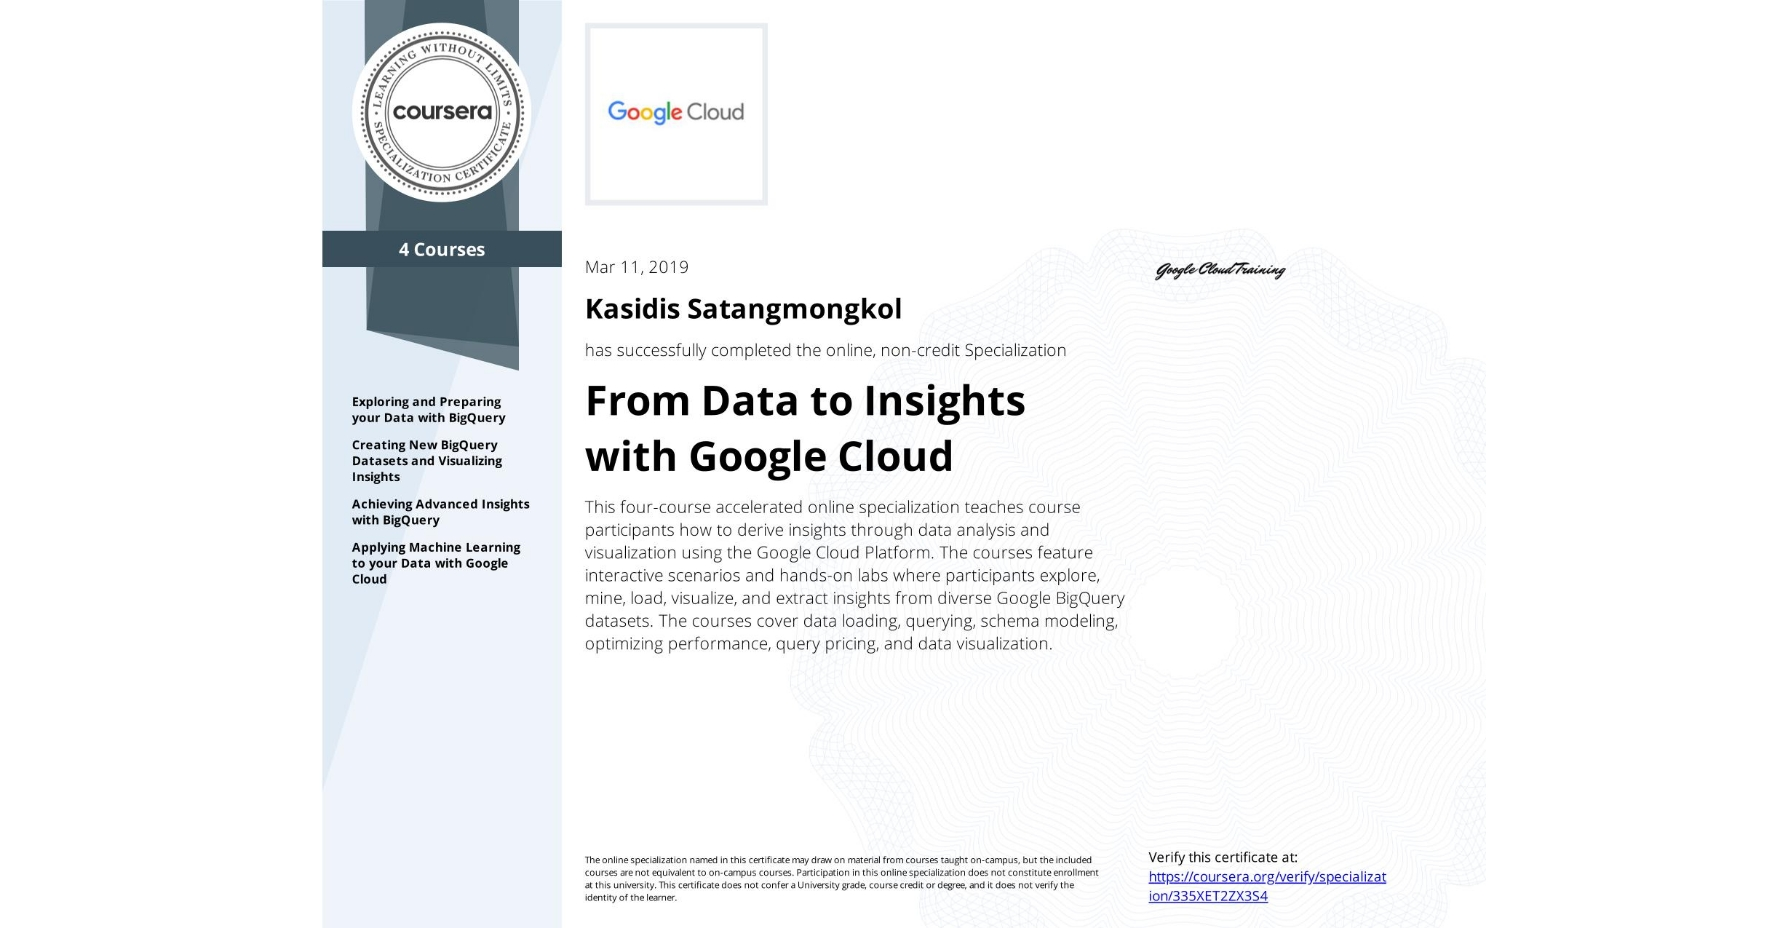 View certificate for KASIDIS SATANGMONGKOL, From Data to Insights with Google Cloud Platform, offered through Coursera. This four-course accelerated online specialization teaches course participants how to derive insights through data analysis and visualization using the Google Cloud Platform. The courses feature interactive scenarios and hands-on labs where participants explore, mine, load, visualize, and extract insights from diverse Google BigQuery datasets. The courses cover data loading, querying, schema modeling, optimizing performance, query pricing, and data visualization.